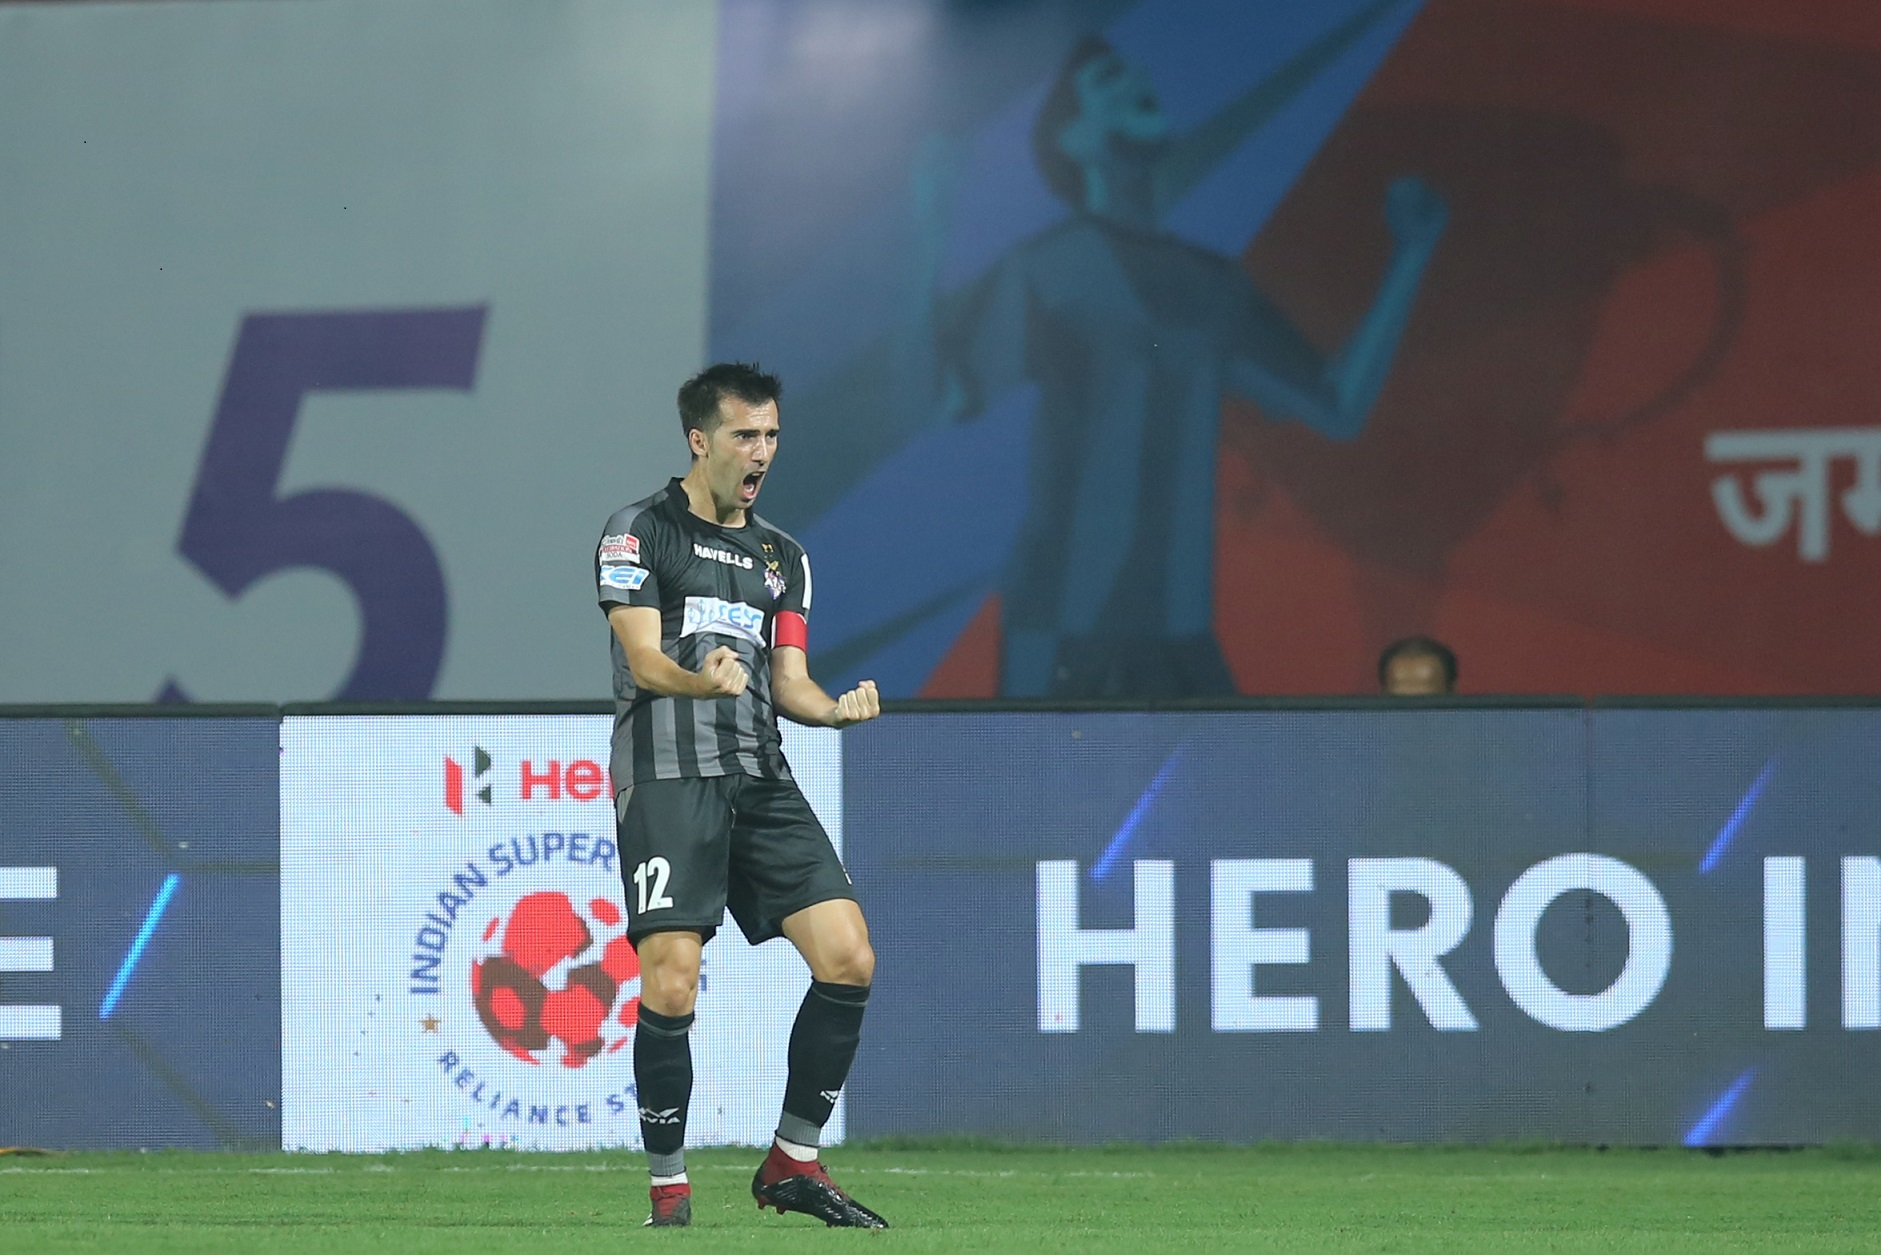 Manuel Lanzarote of ATK celebrates the goal against Jamshedpur FC and equalizes the match in Hero ISL